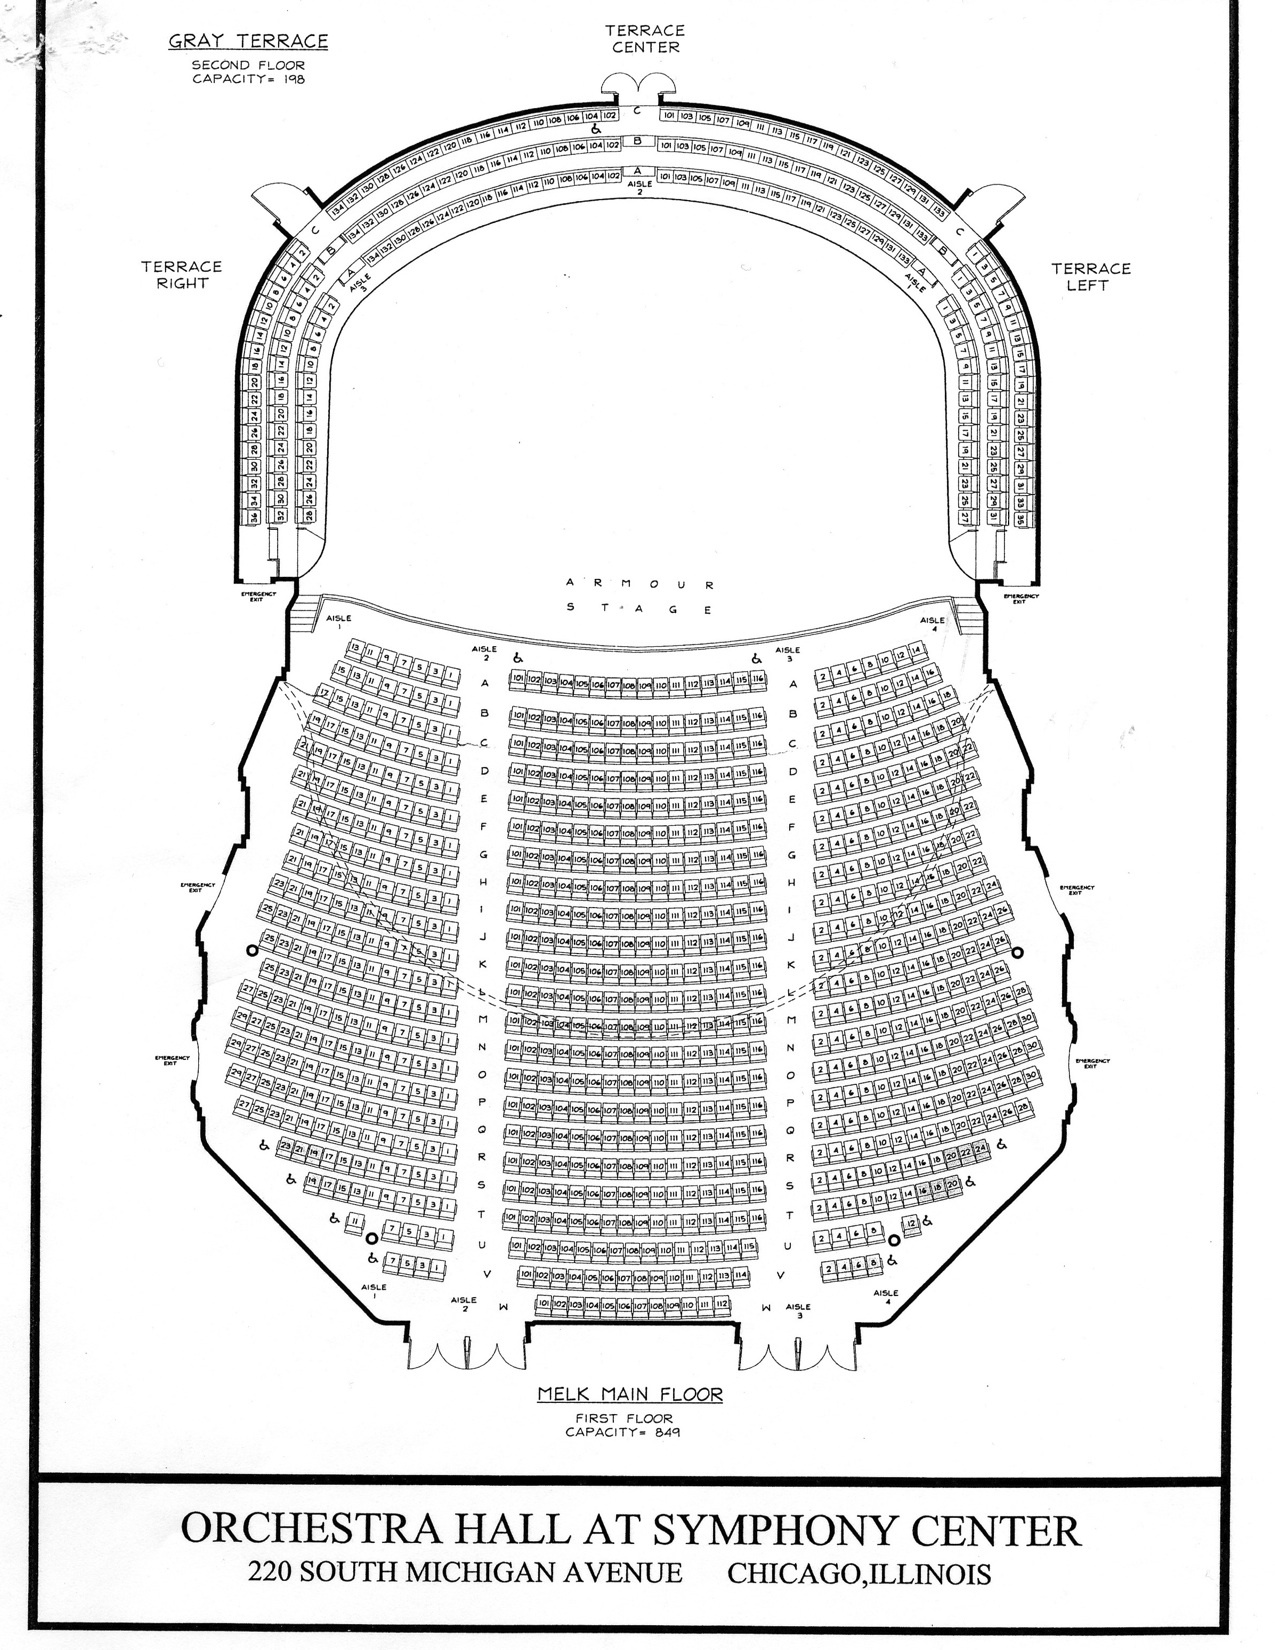 Chicago symphony center chicago tickets schedule seating